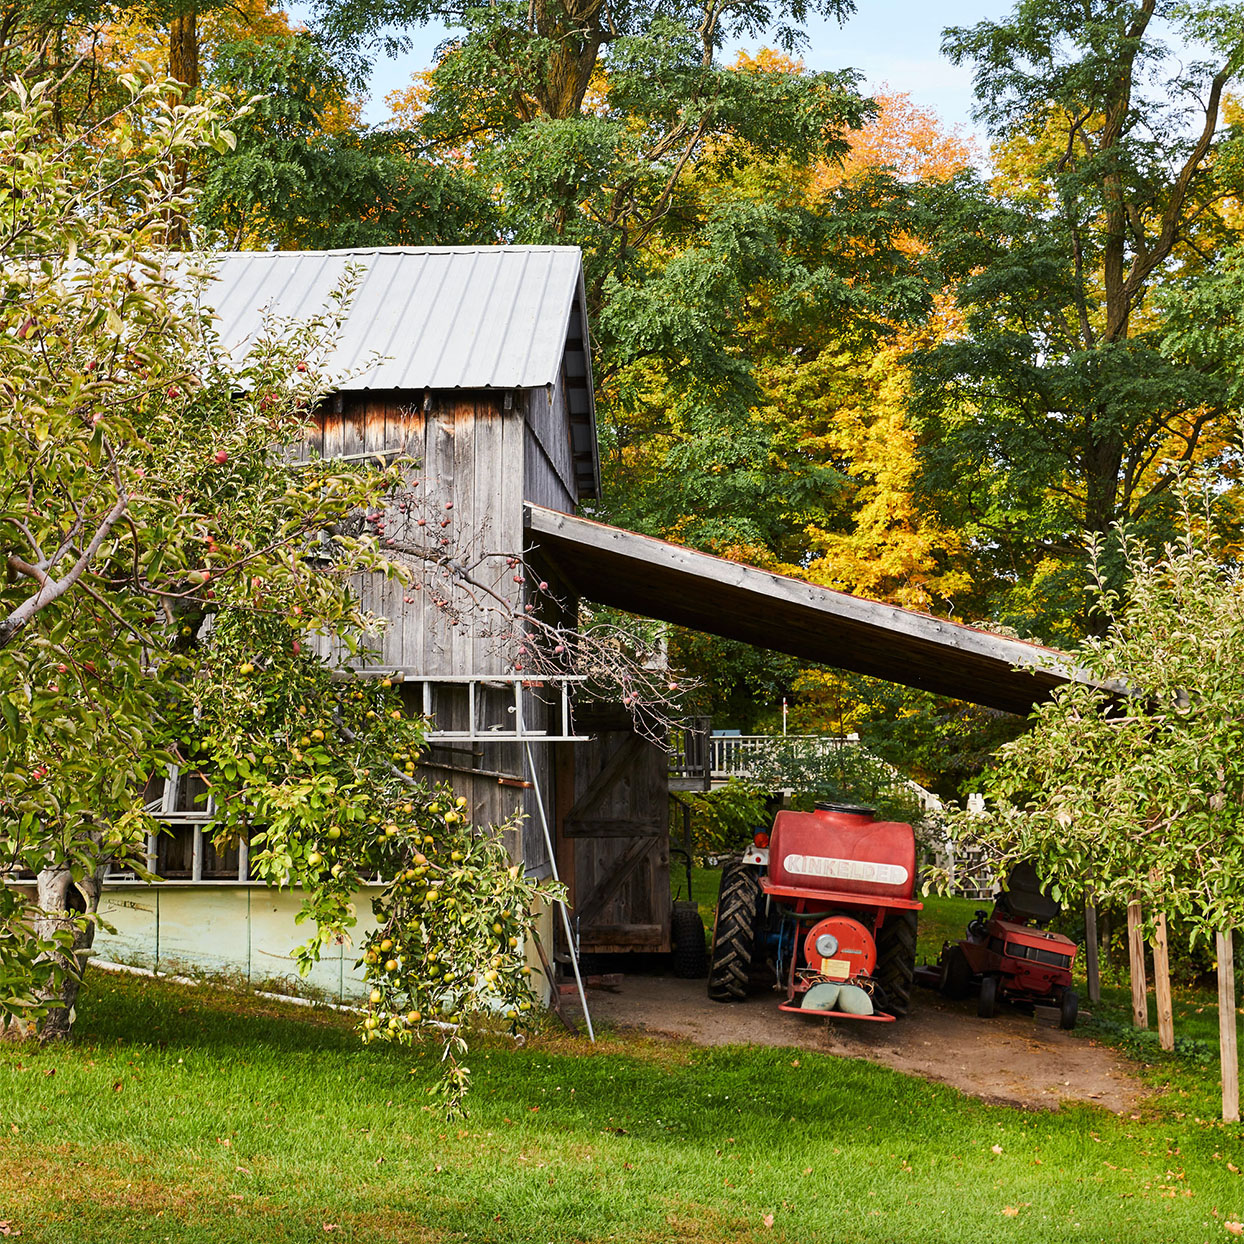 apple orchard tractor and building